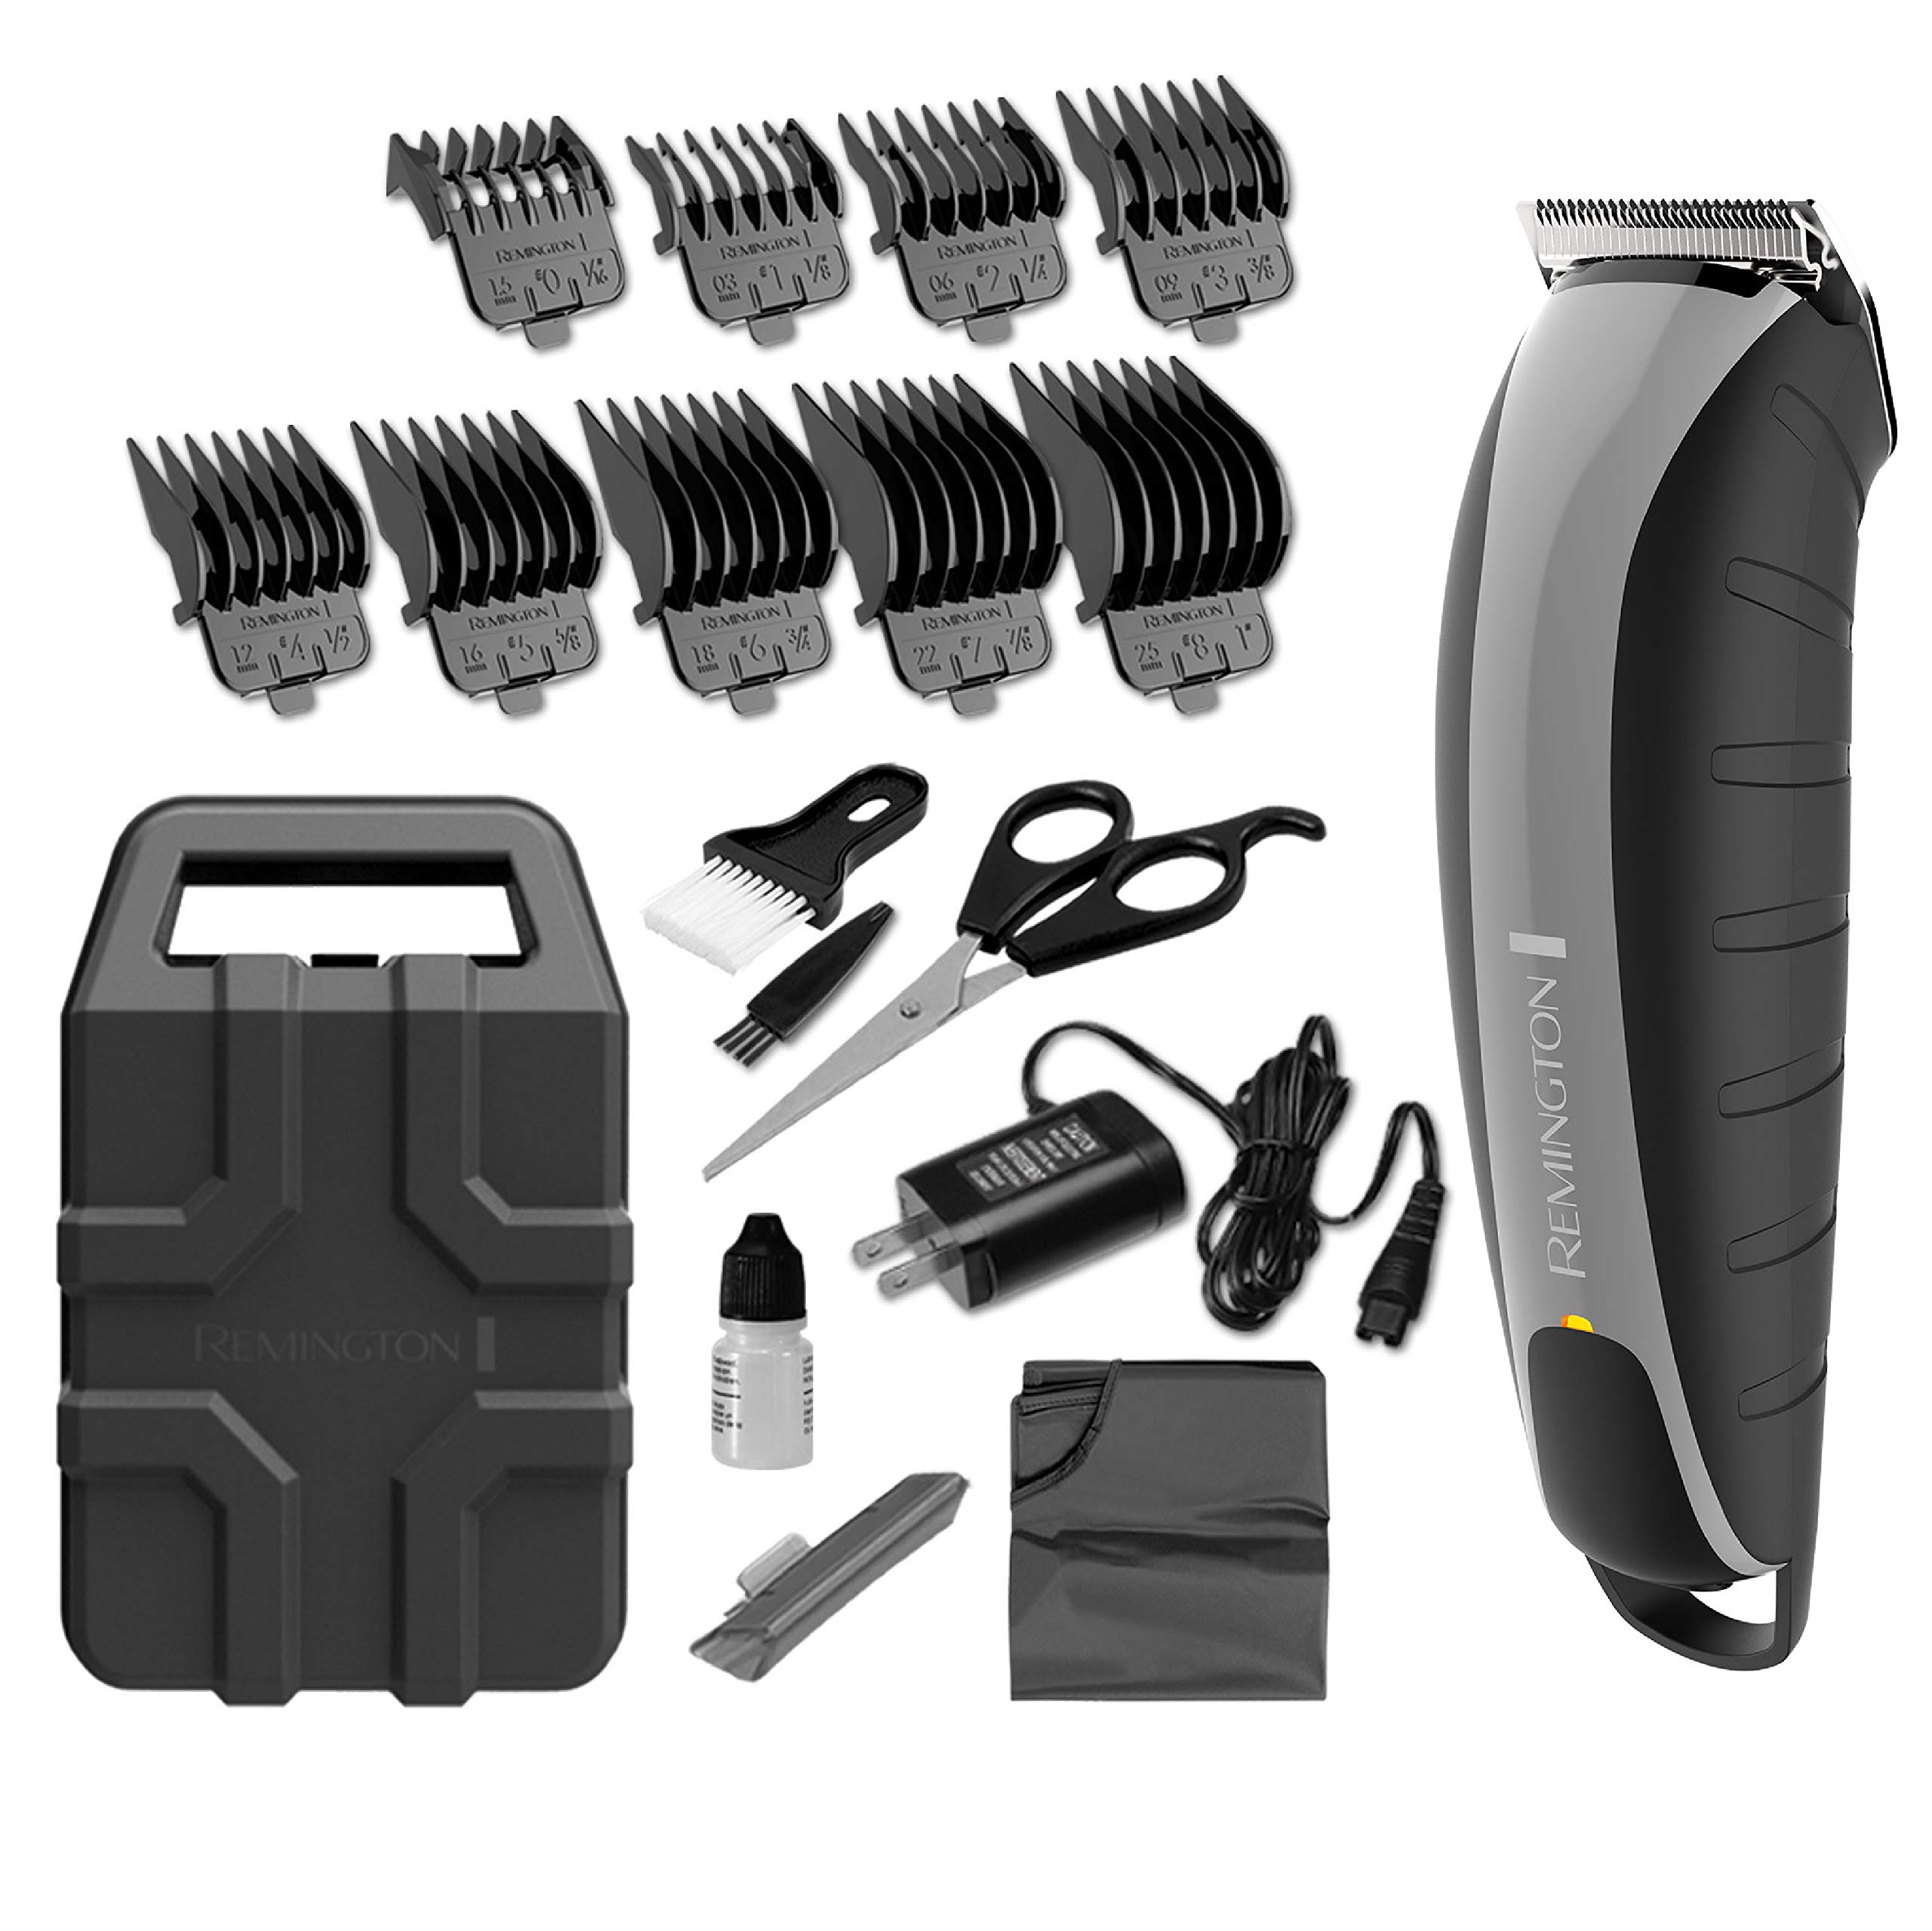 Remington HC5870 Cordless Virtually Indestructible Barbershop Clipper, Hair Clippers, Hair Trimmer, Clippers by Remington